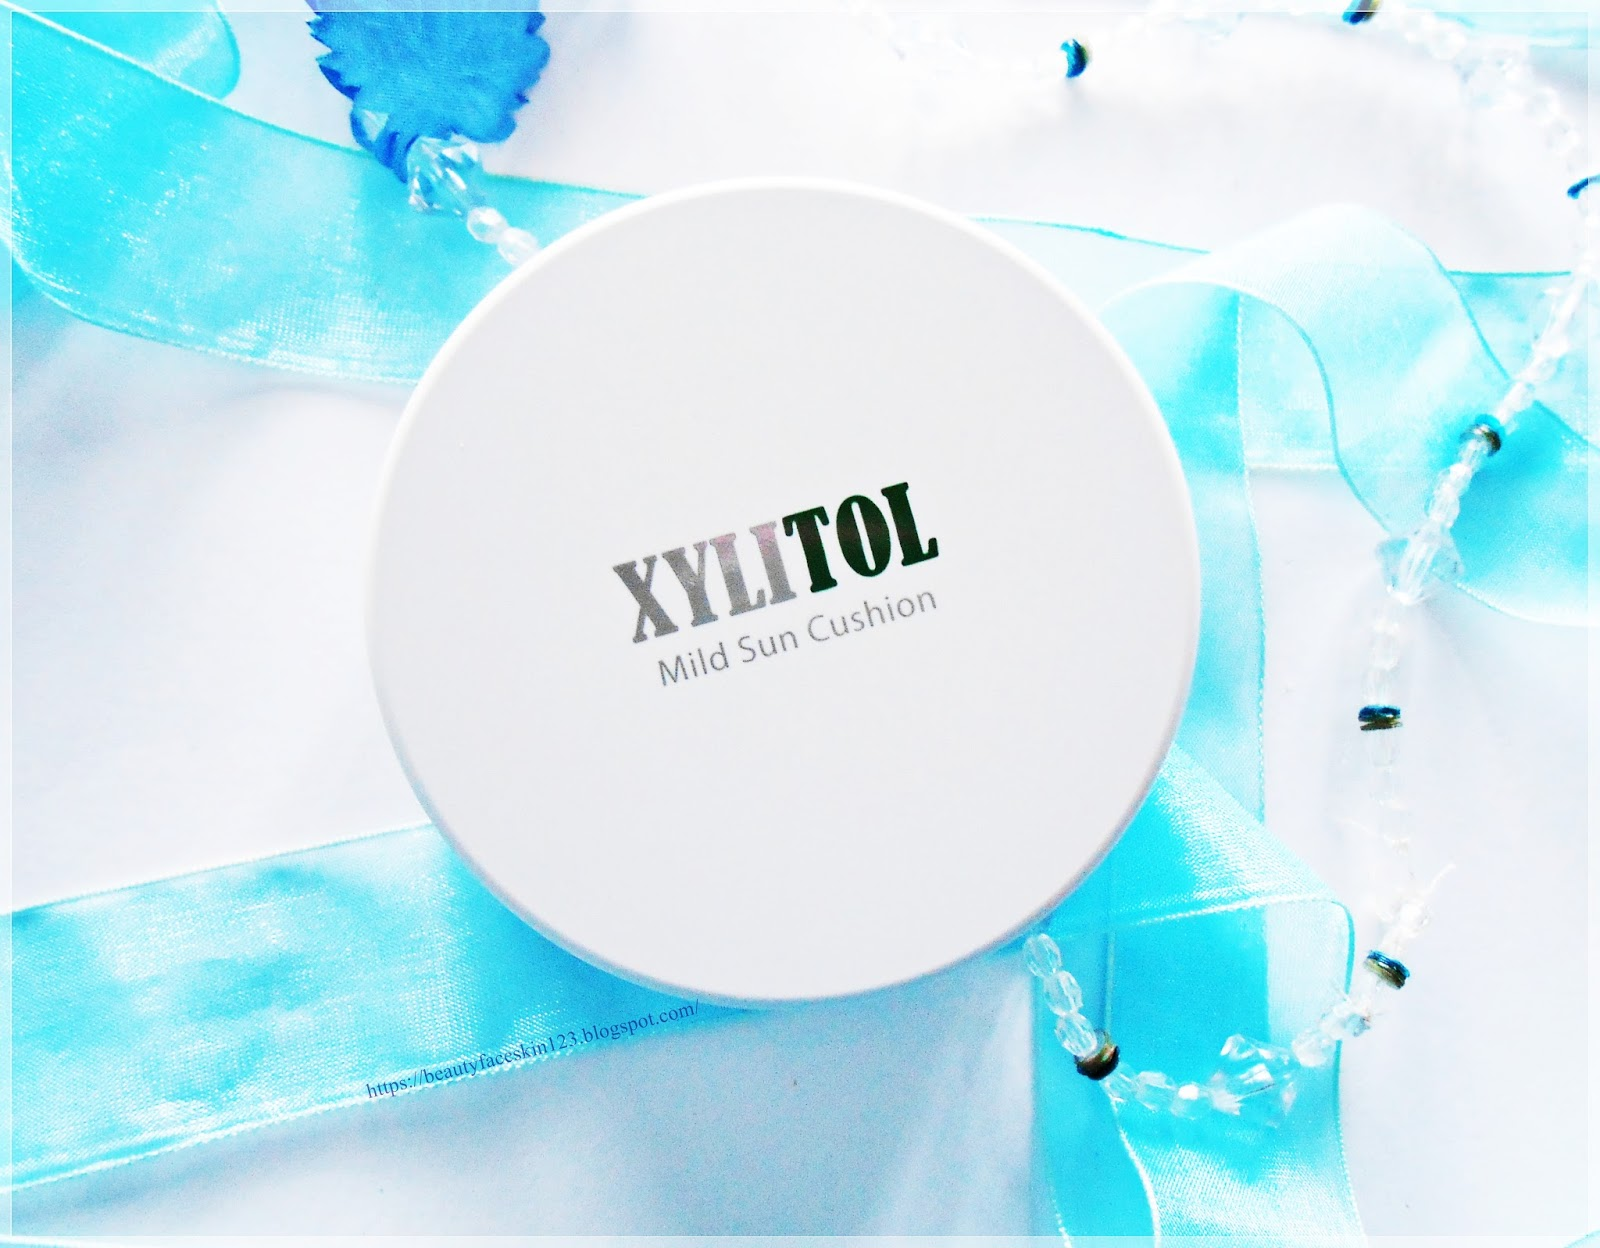 Image result for ANDLAB XYLITOL MILD SUN CUSHION